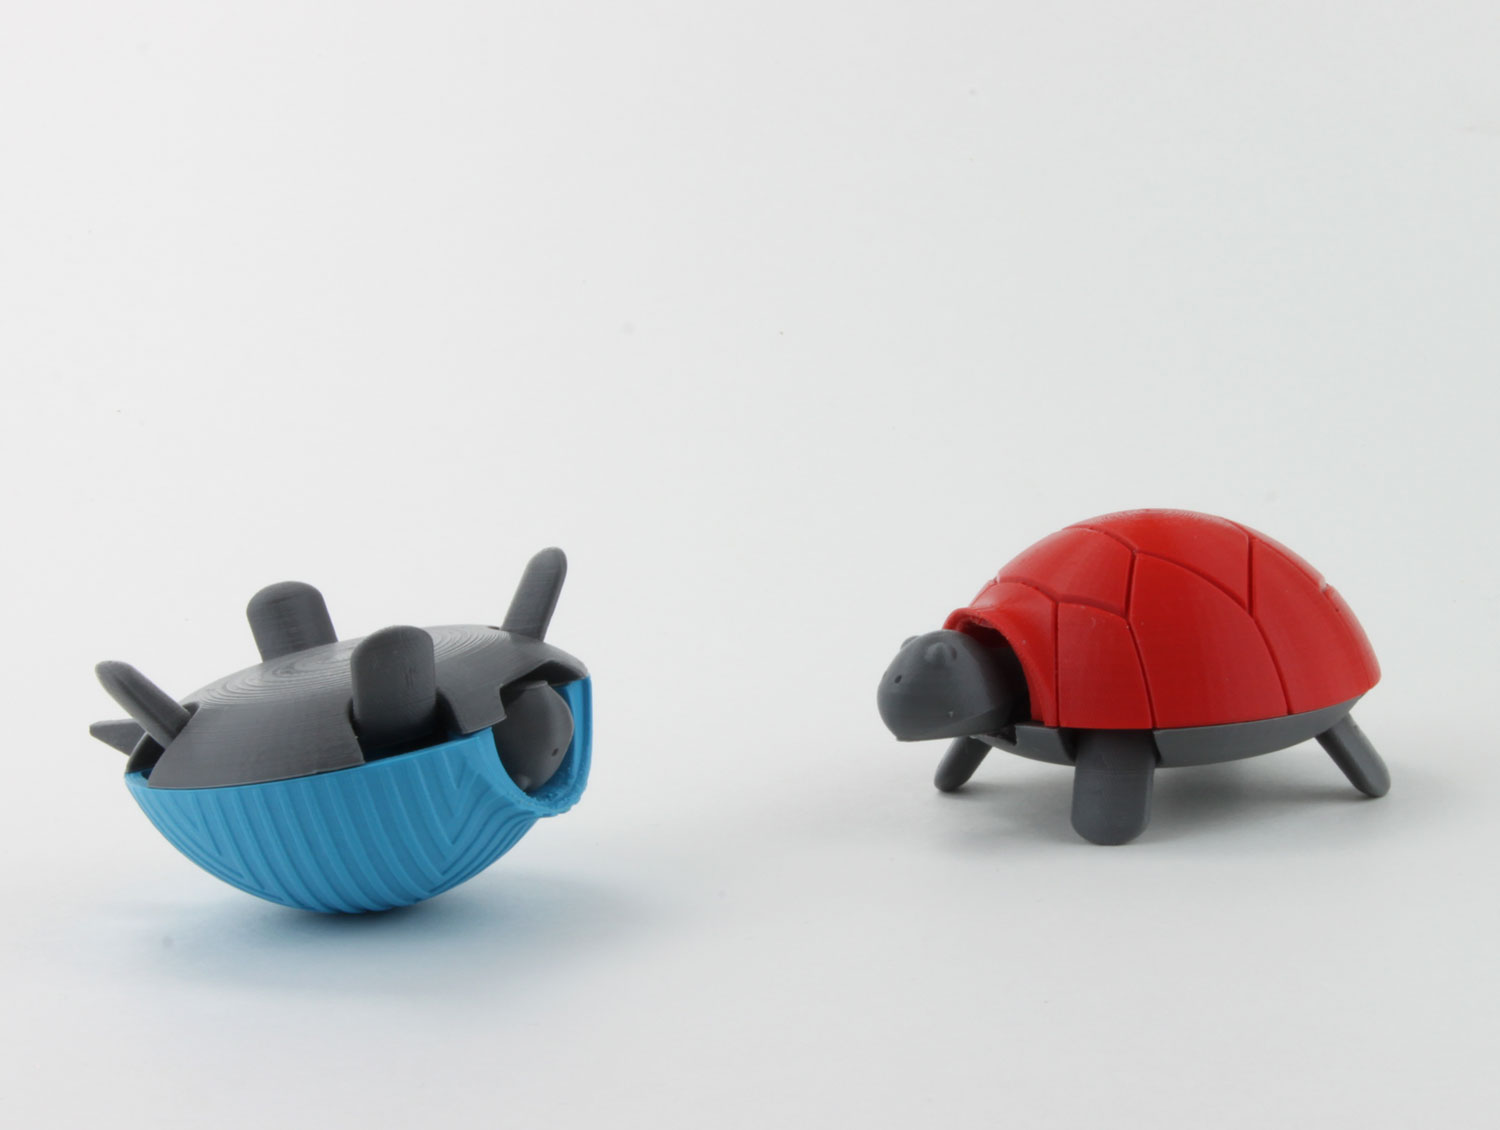 upside down 3d printed squishy turtle nature animal toy kids project design colorful